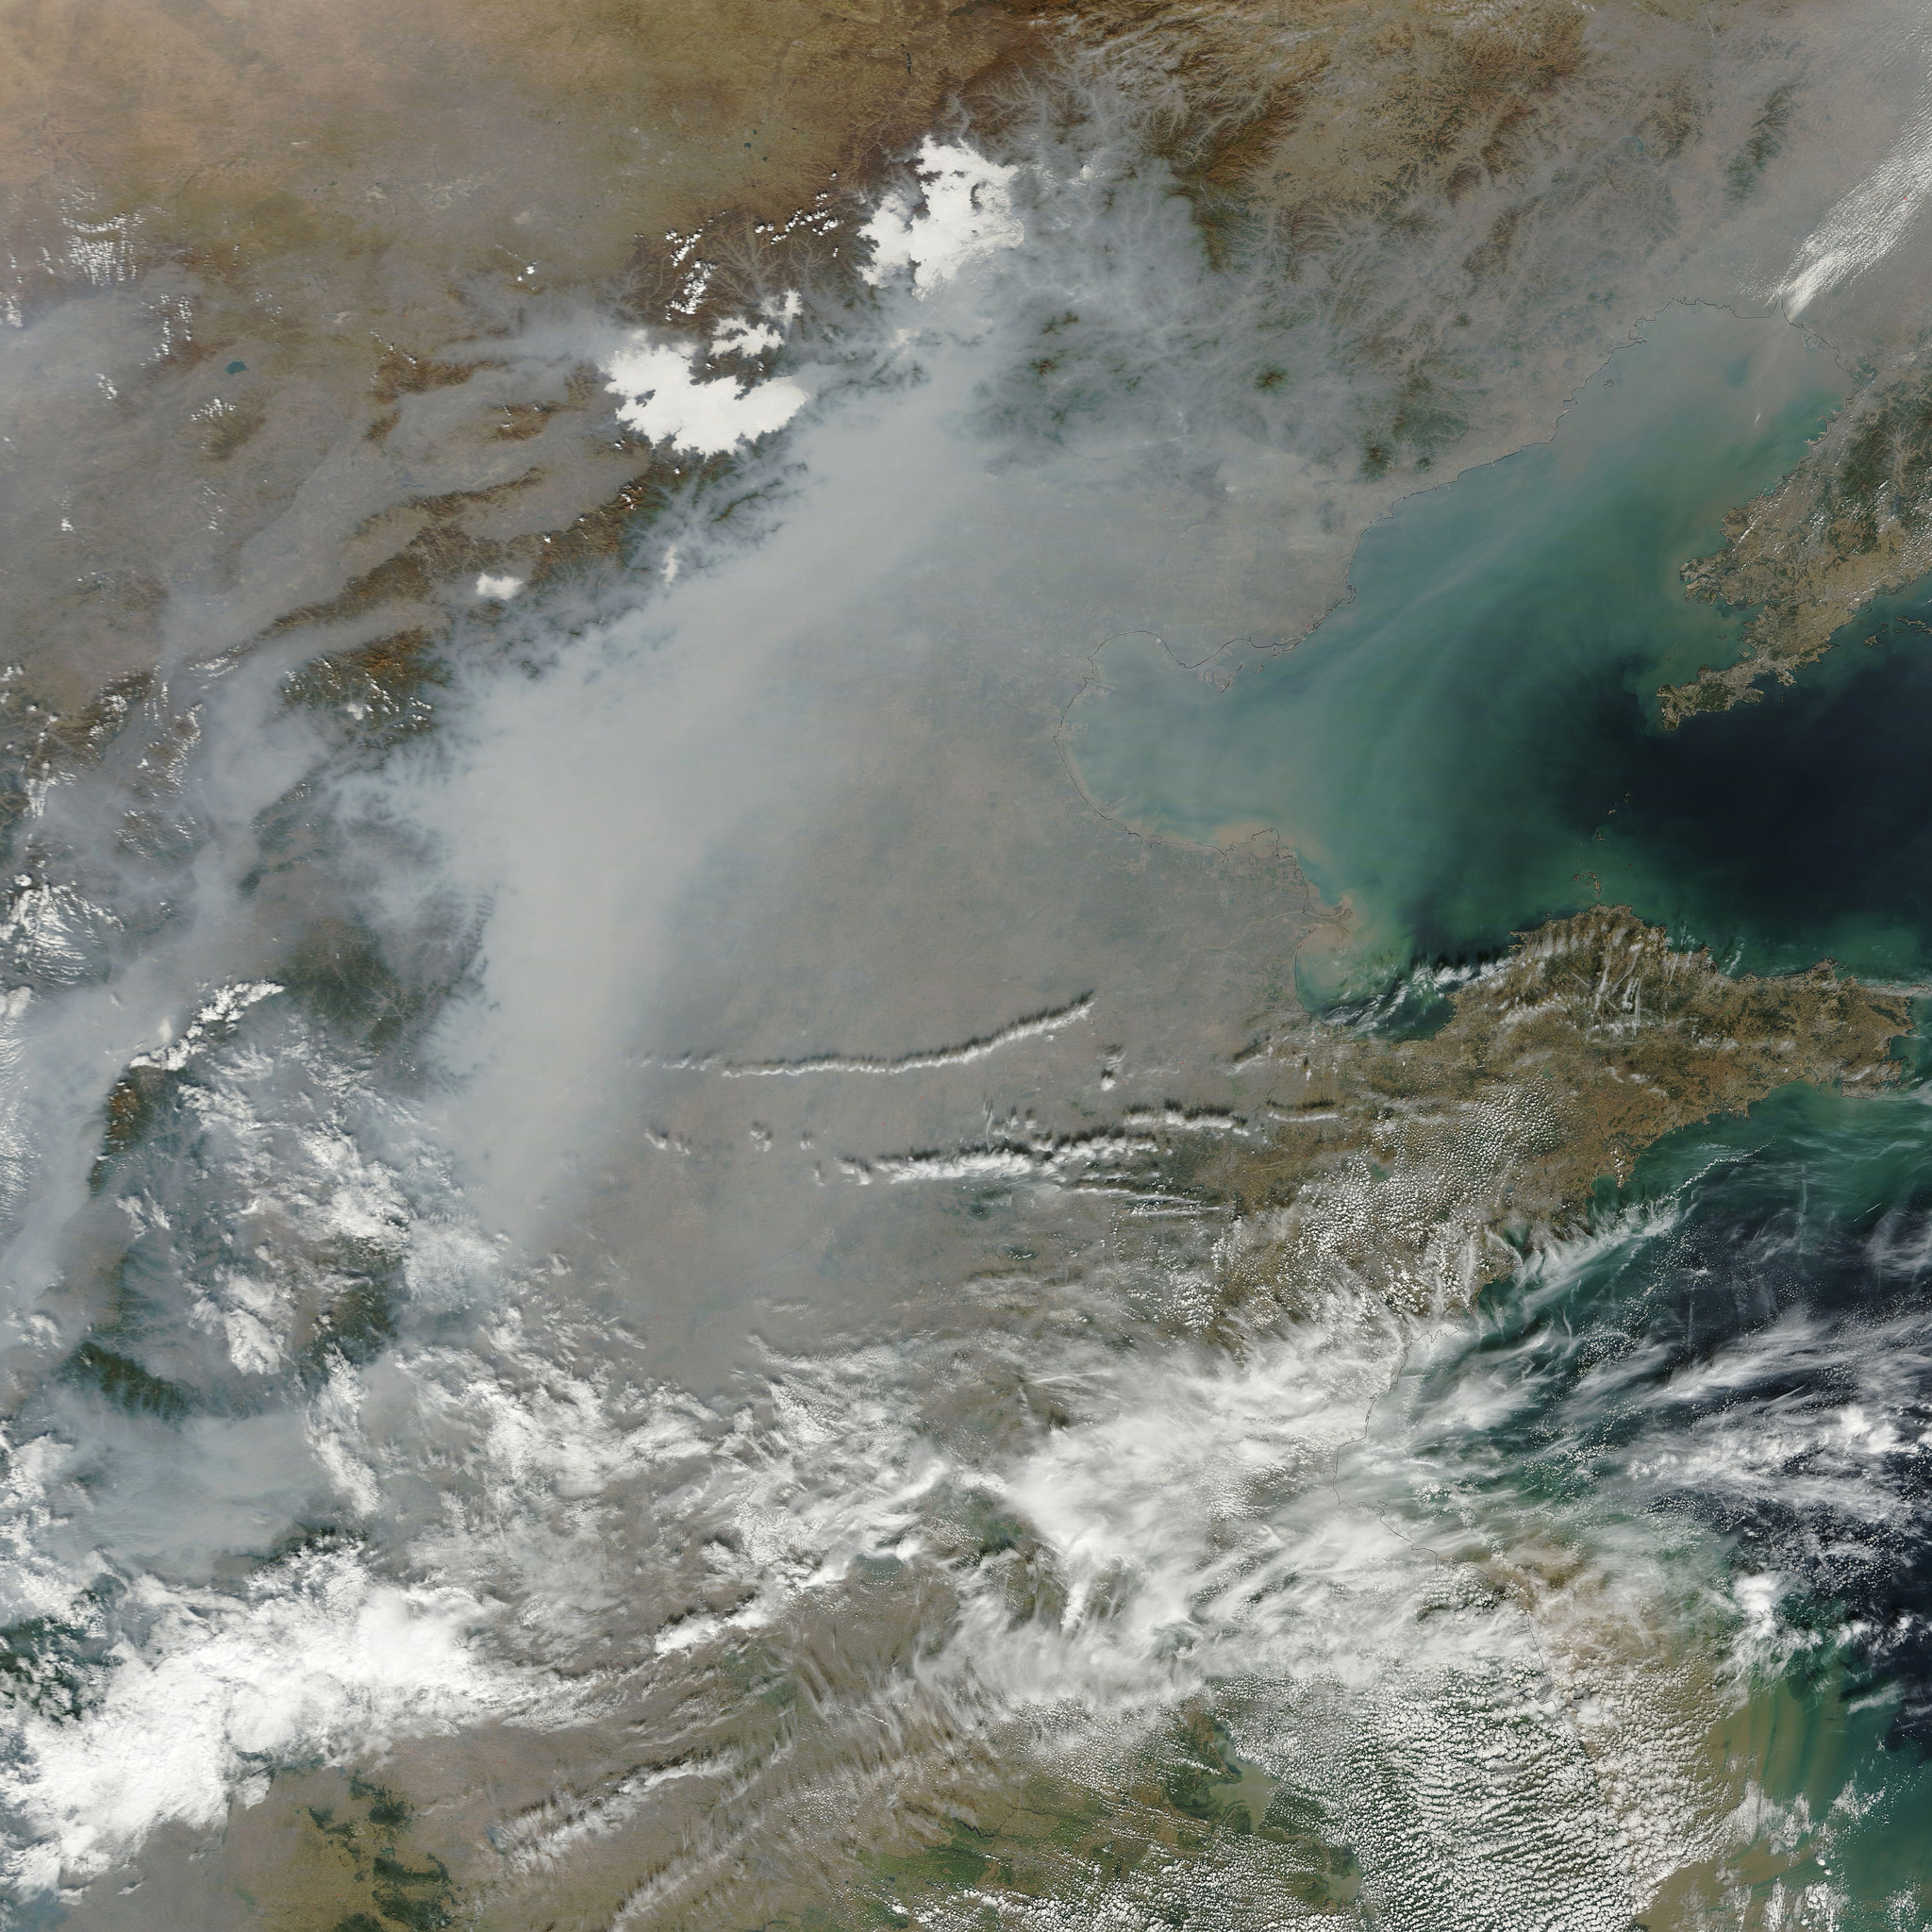 Haze due to particulate matter over North China in October 2014. (Image: NASA Goddard Space Flight Center/Flickr)